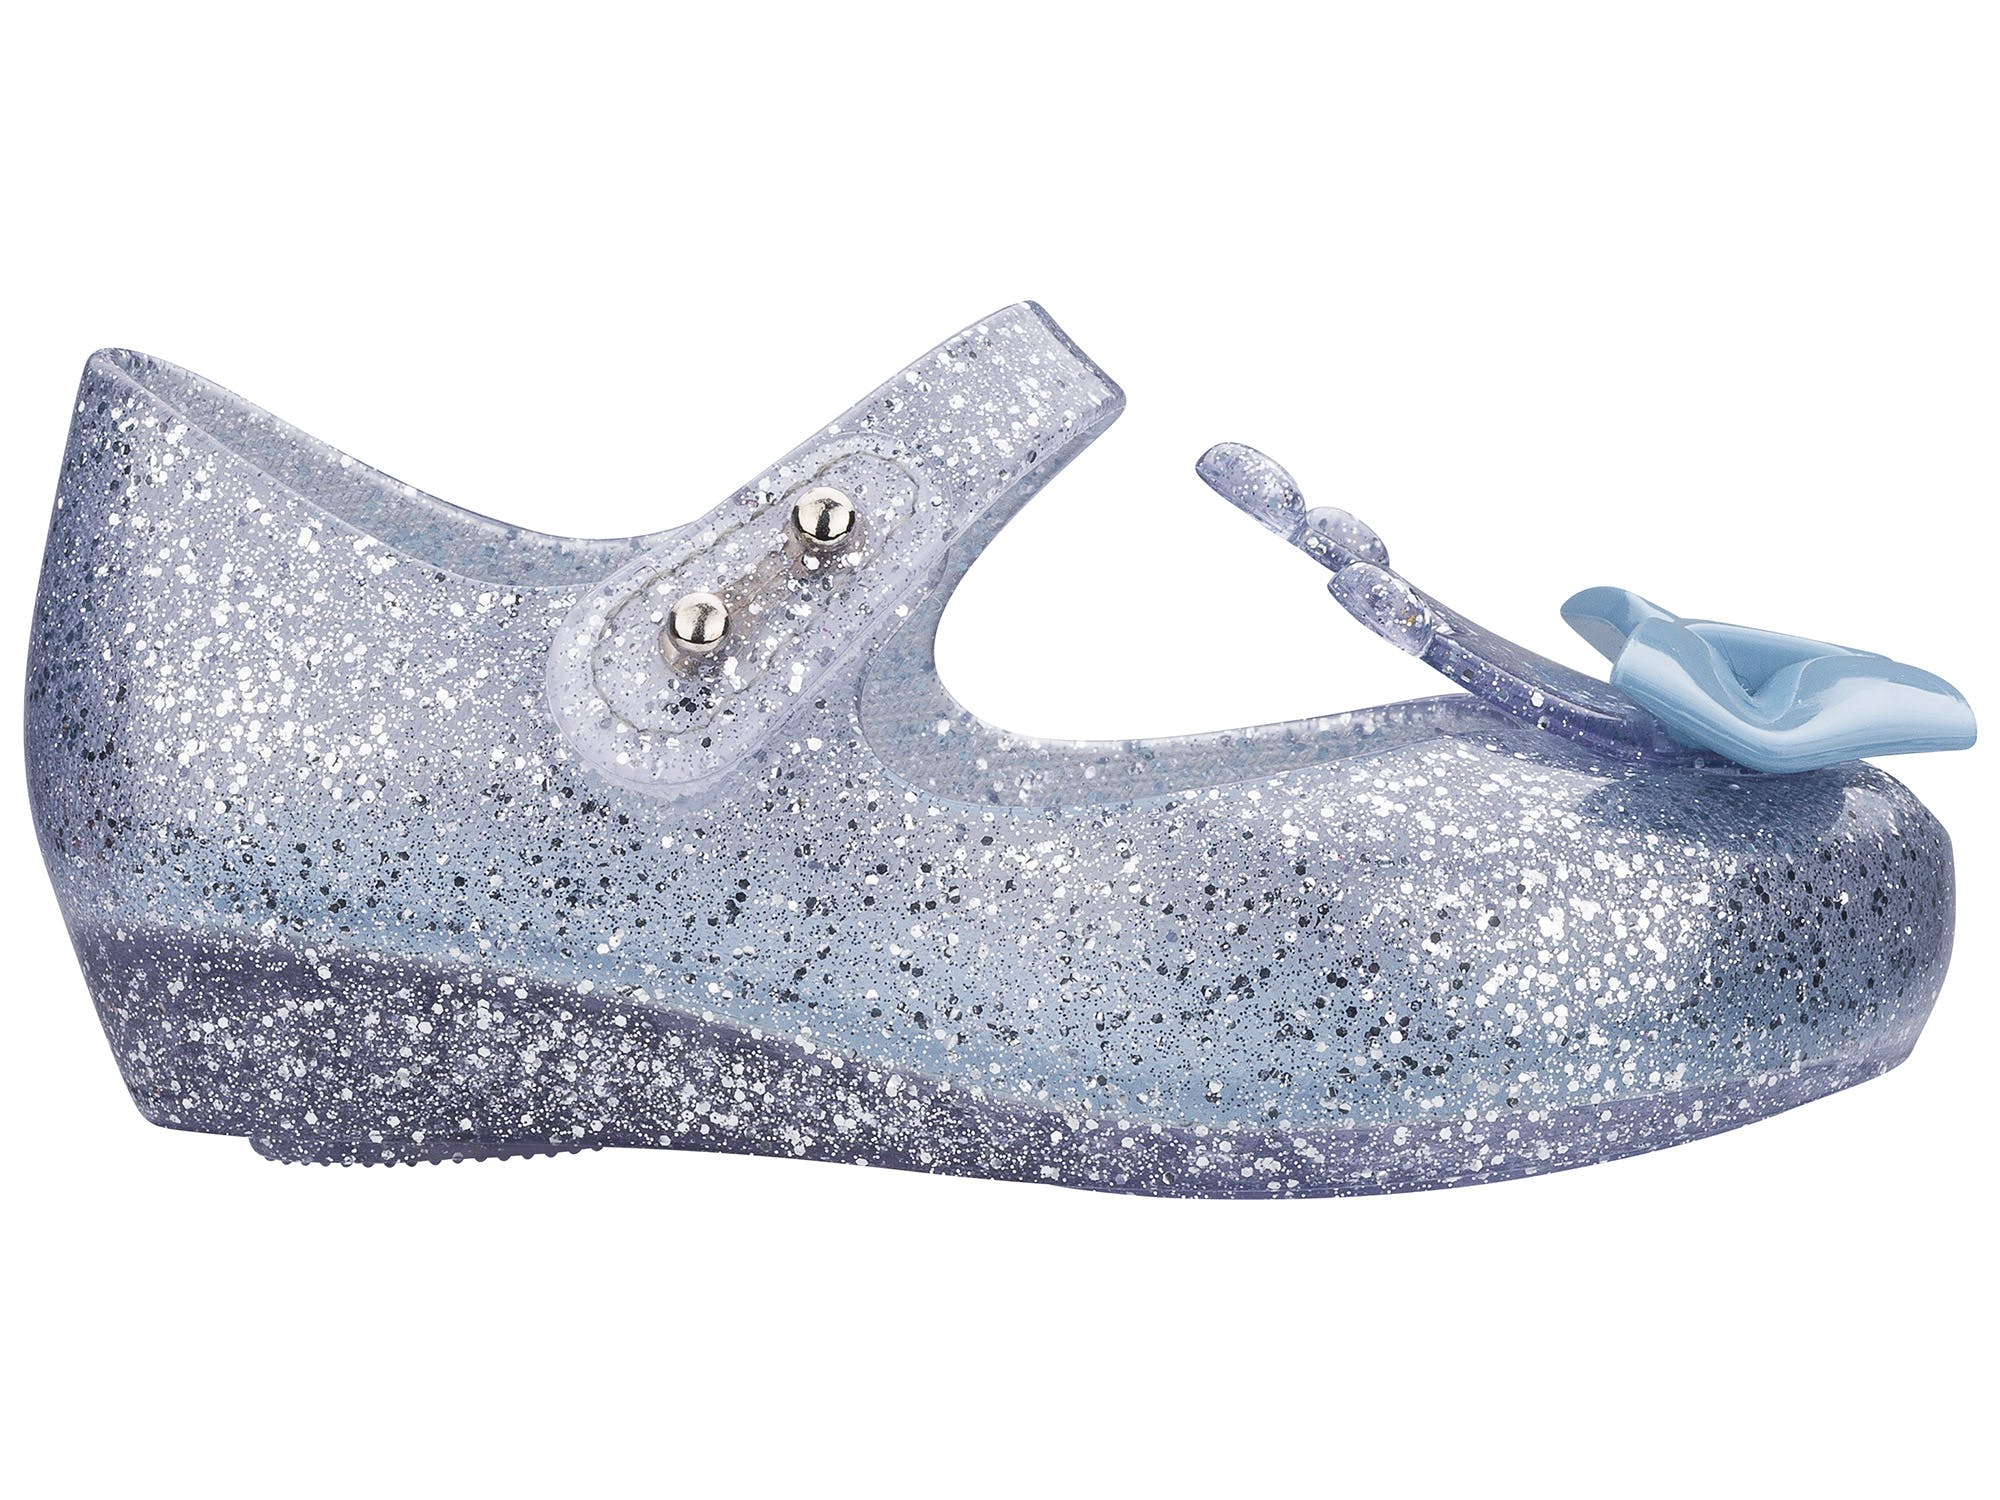 Mini Melissa Ultragirl Princess Vidro Glitter